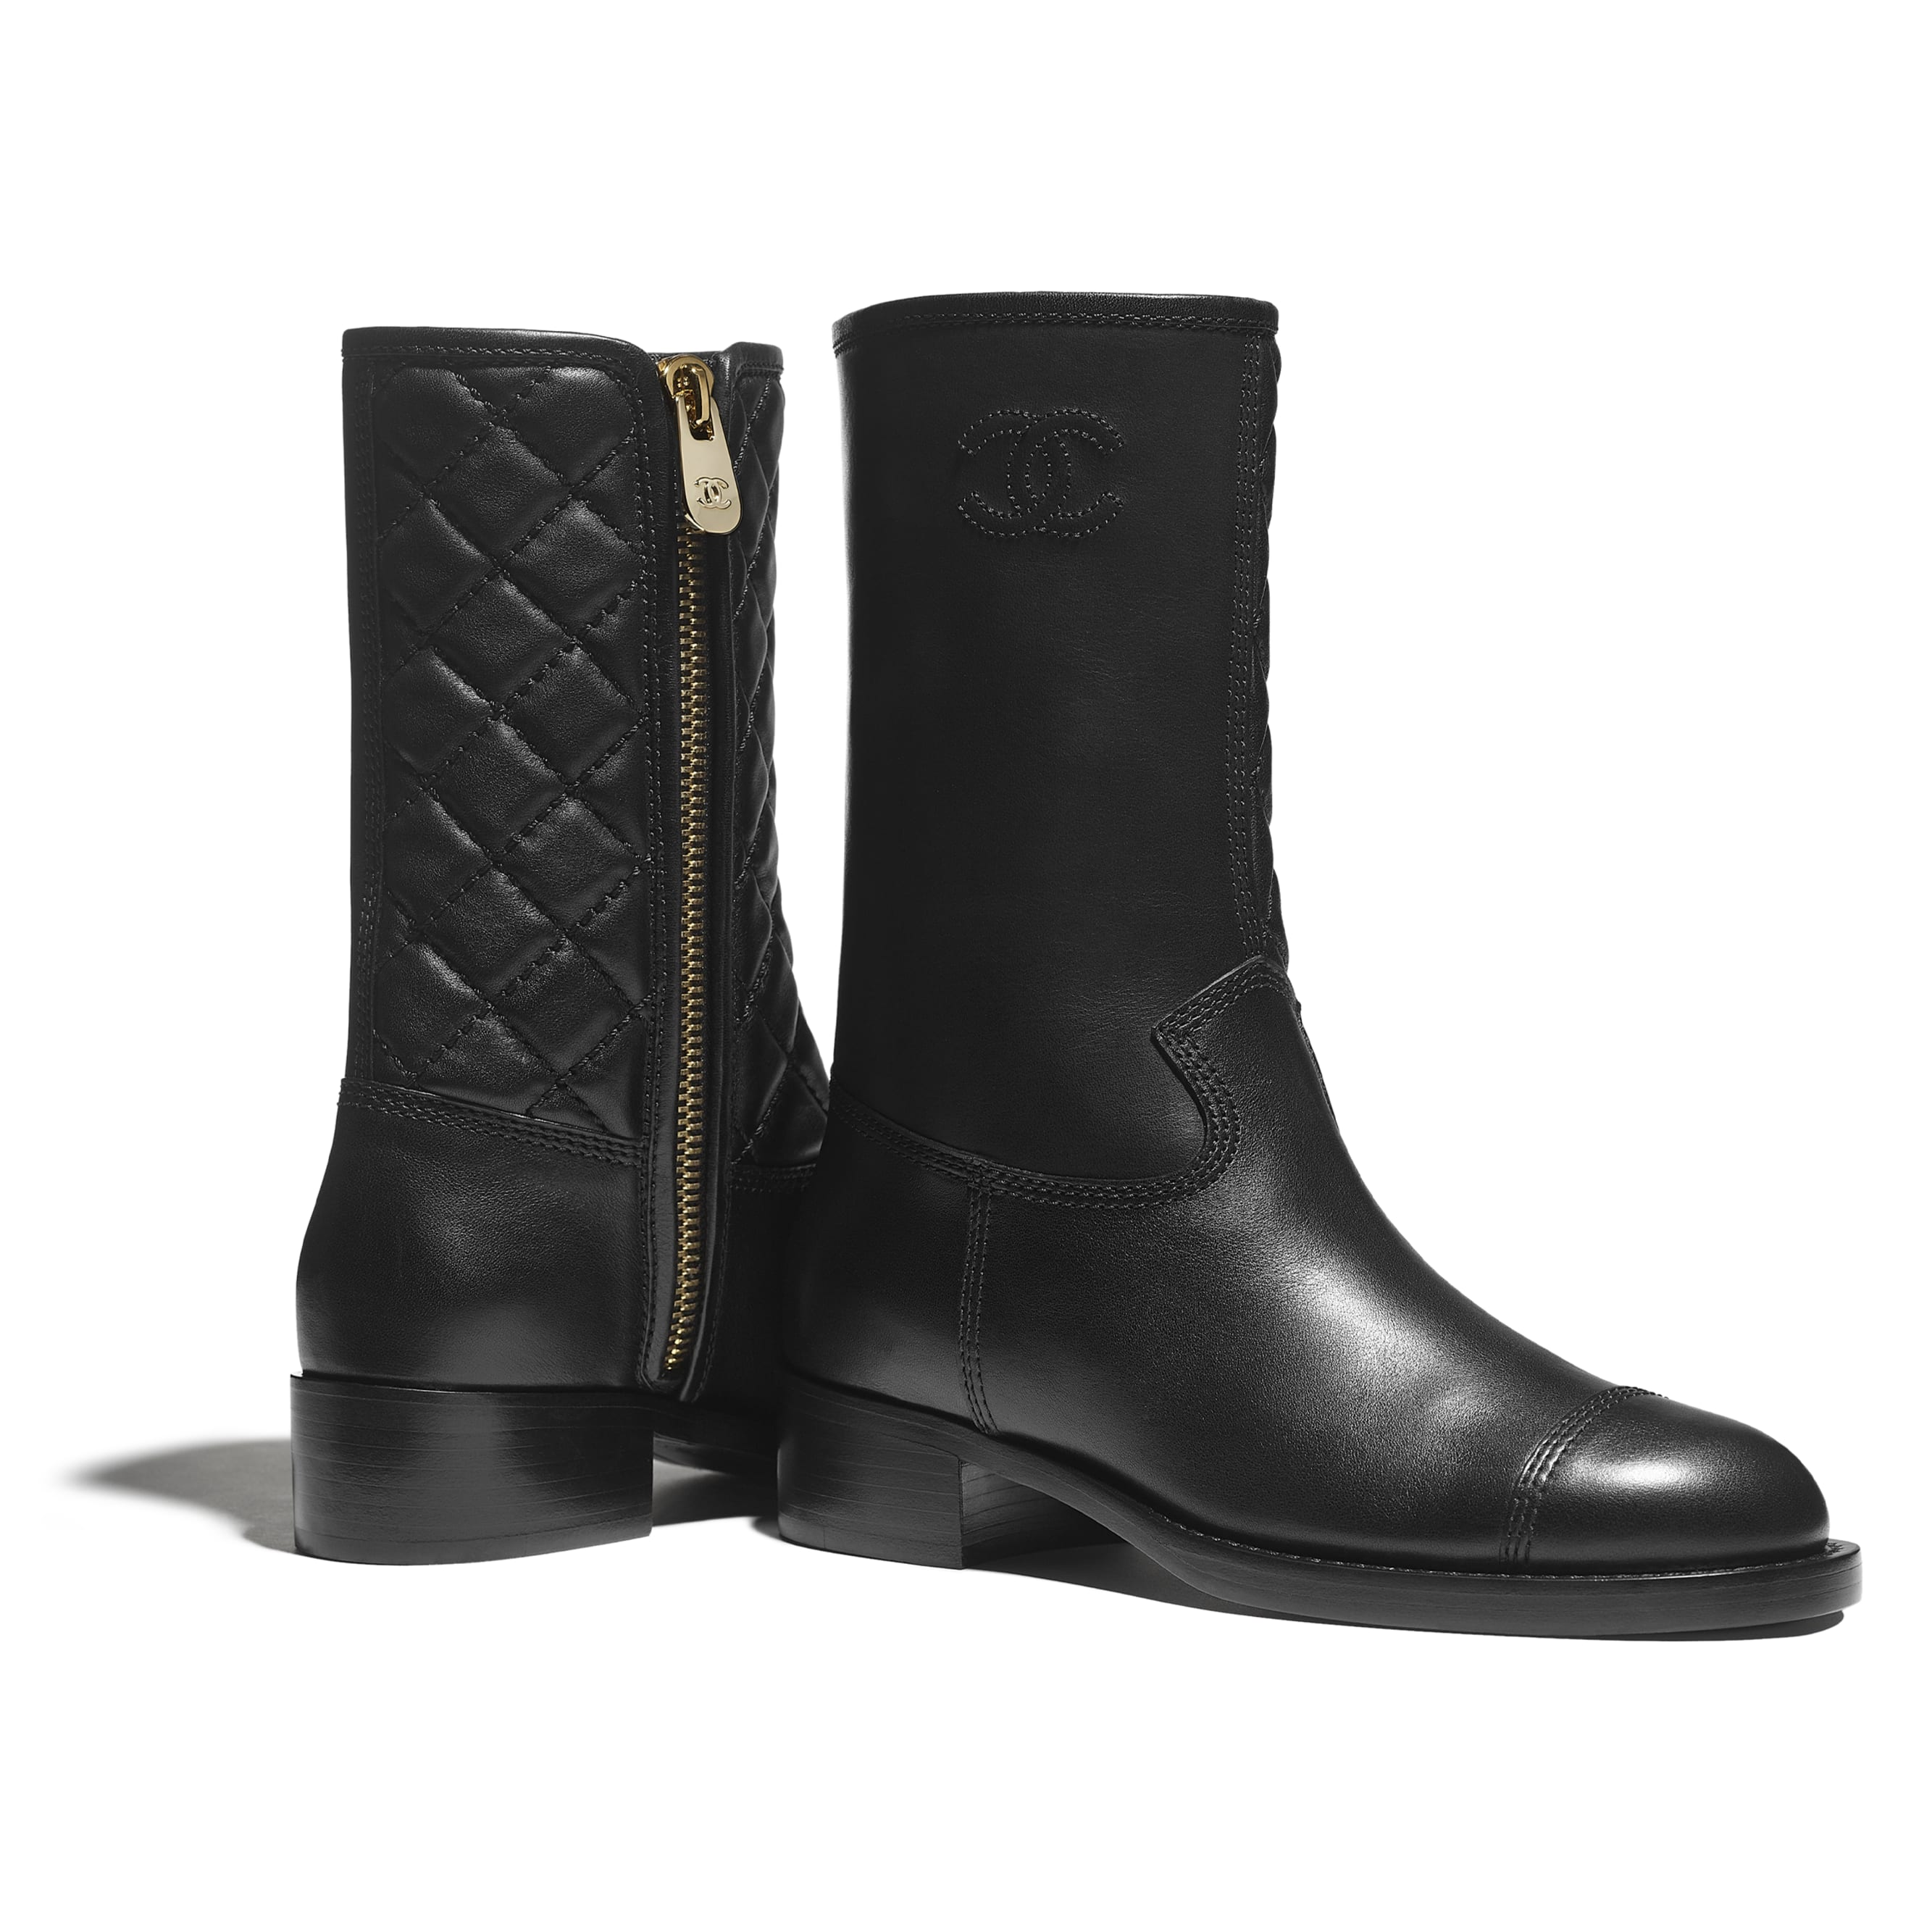 Mid-Calf Boots - Black - Calfskin - CHANEL - Extra view - see standard sized version